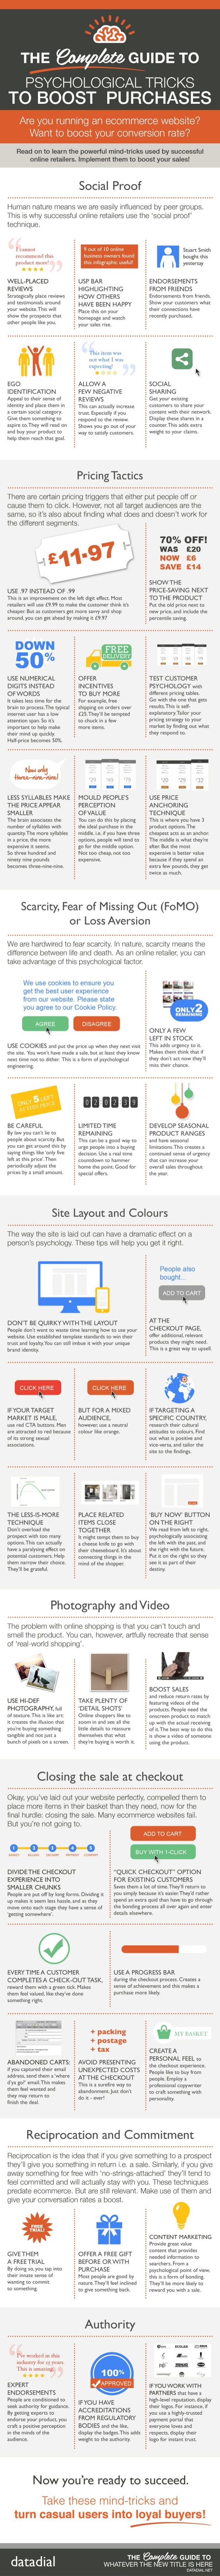 Psychology of ecommerce